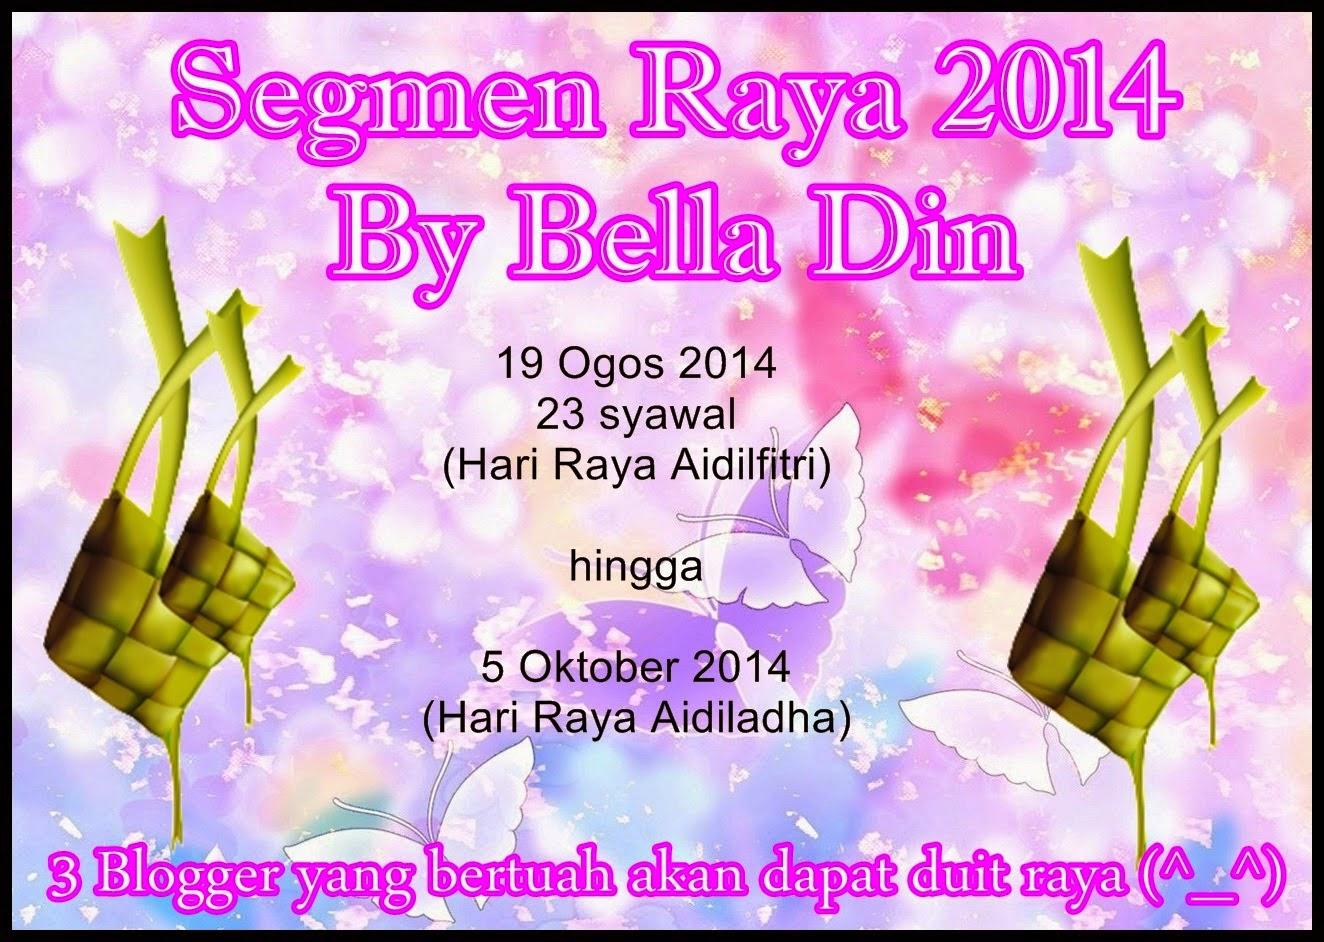 Segmen Raya 2014 By Bella Din